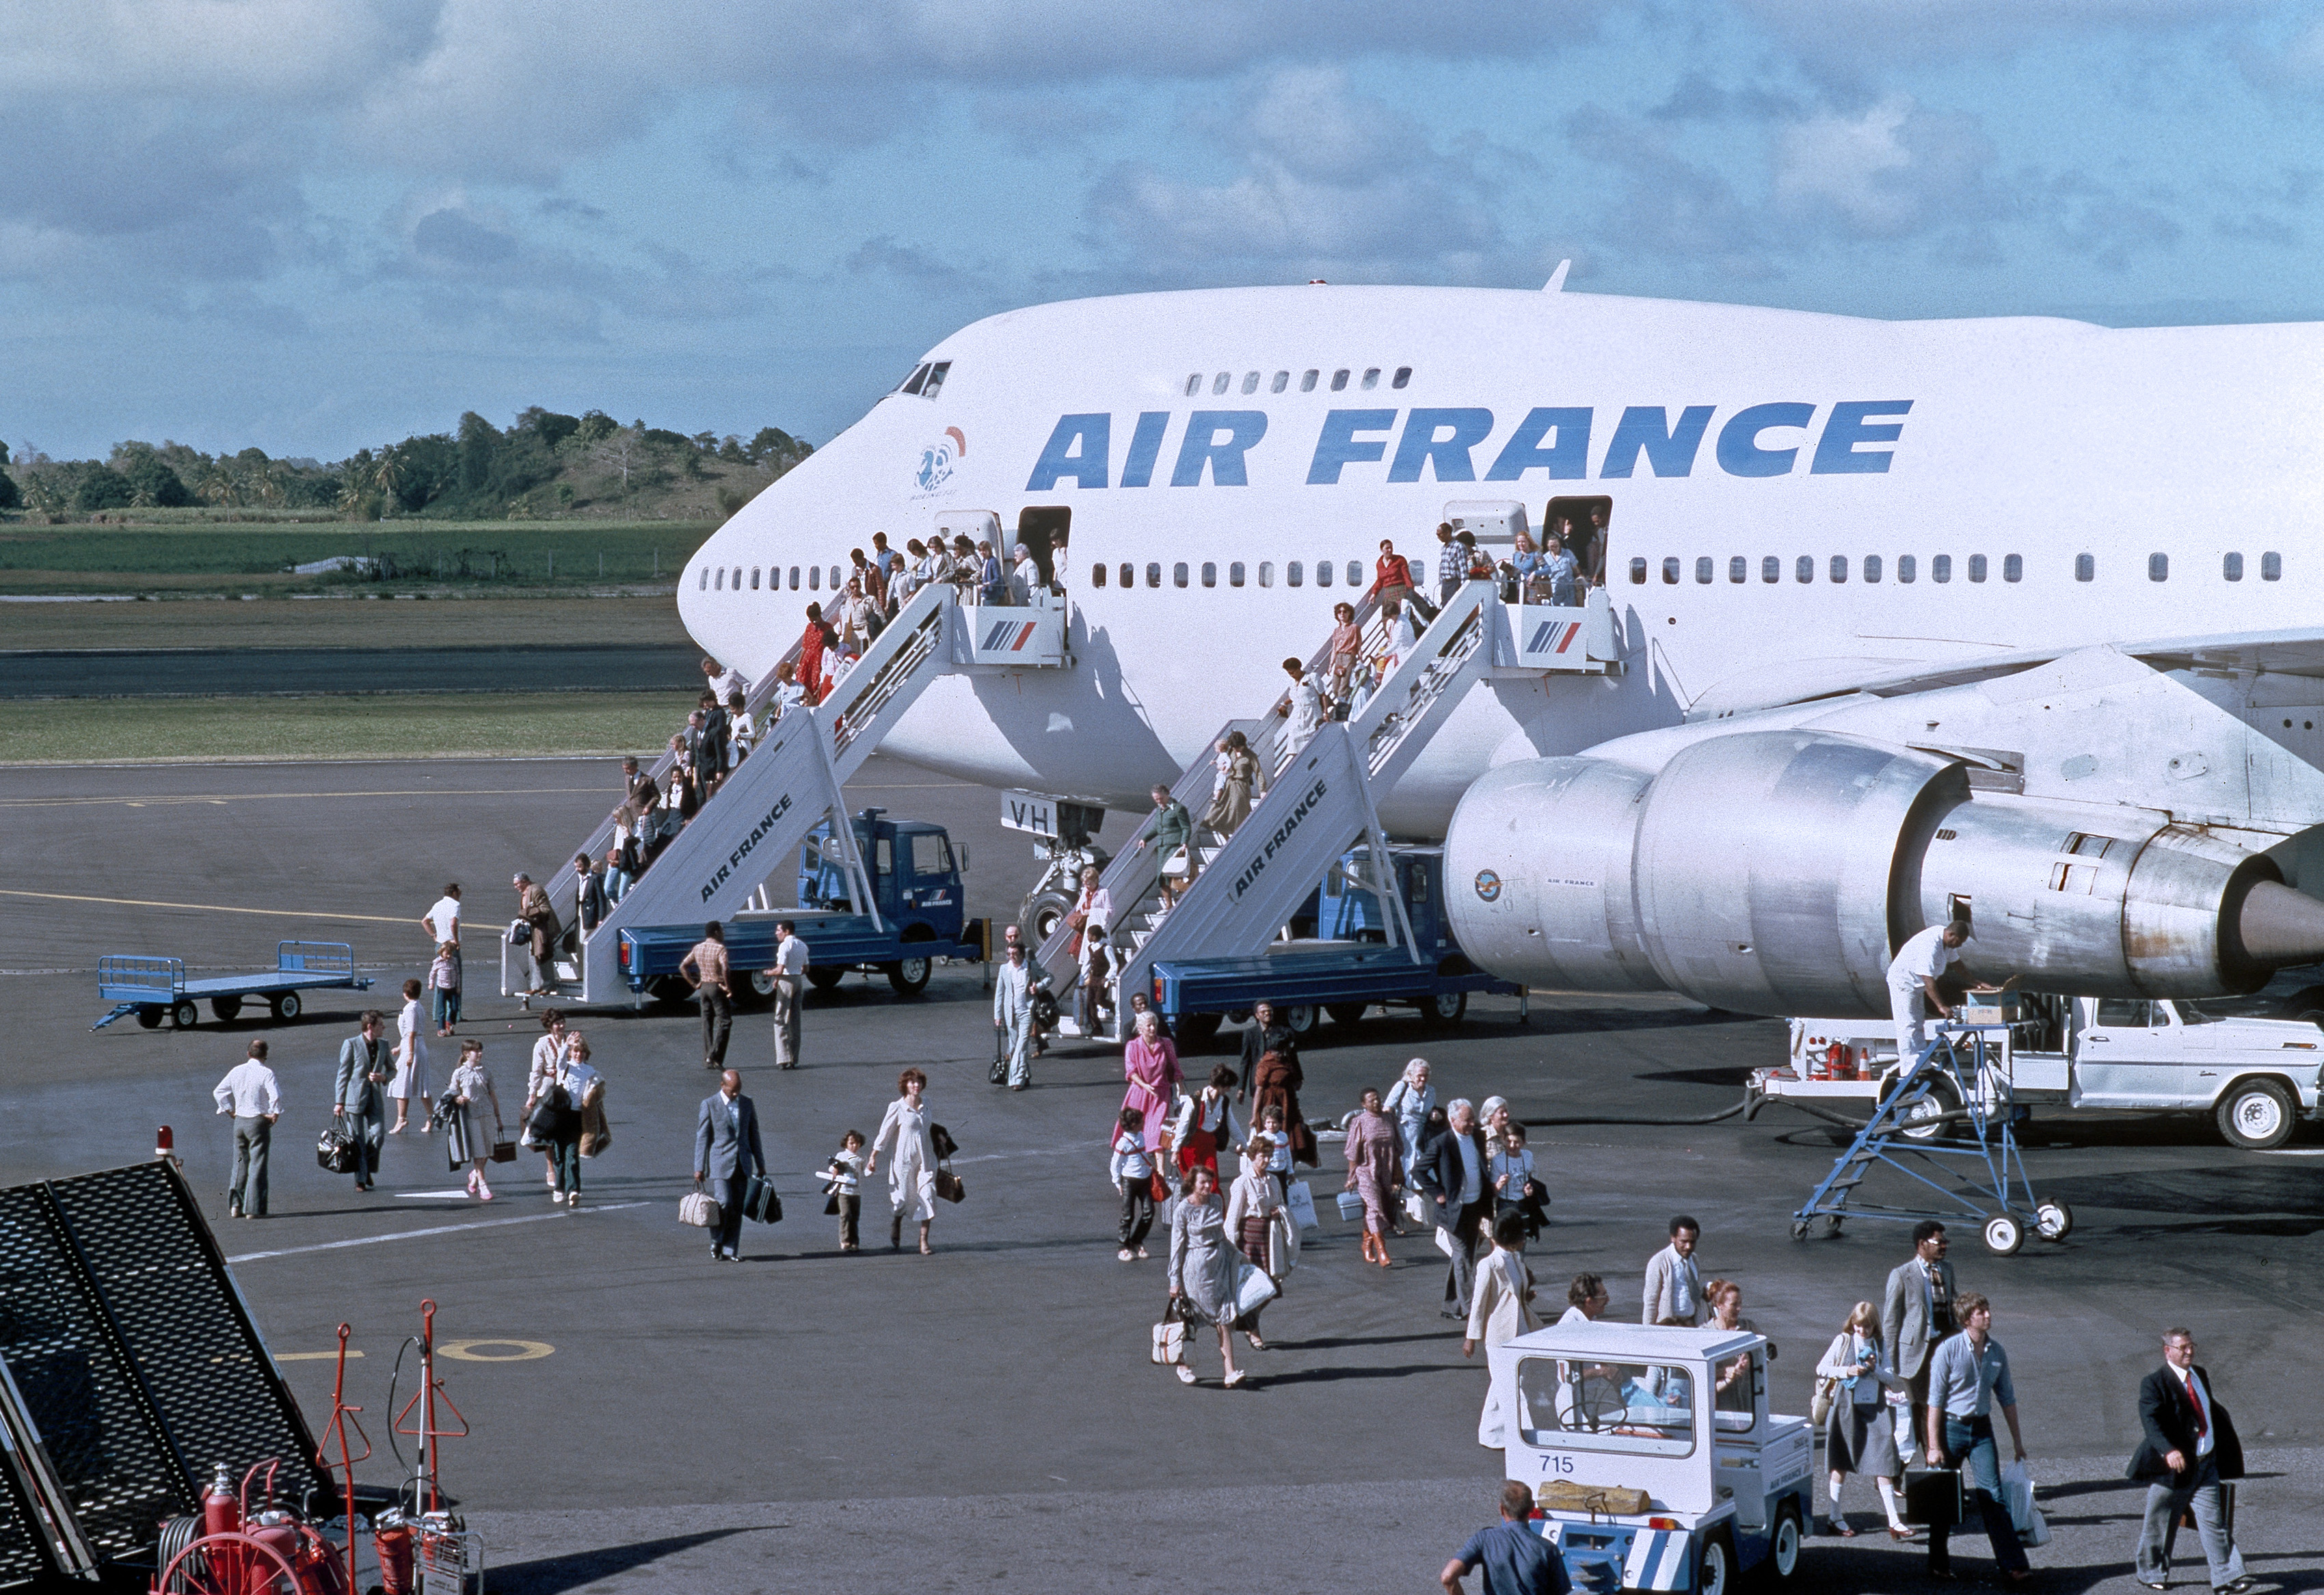 27 octobre 2014 publicit for Boeing 777 air france interieur